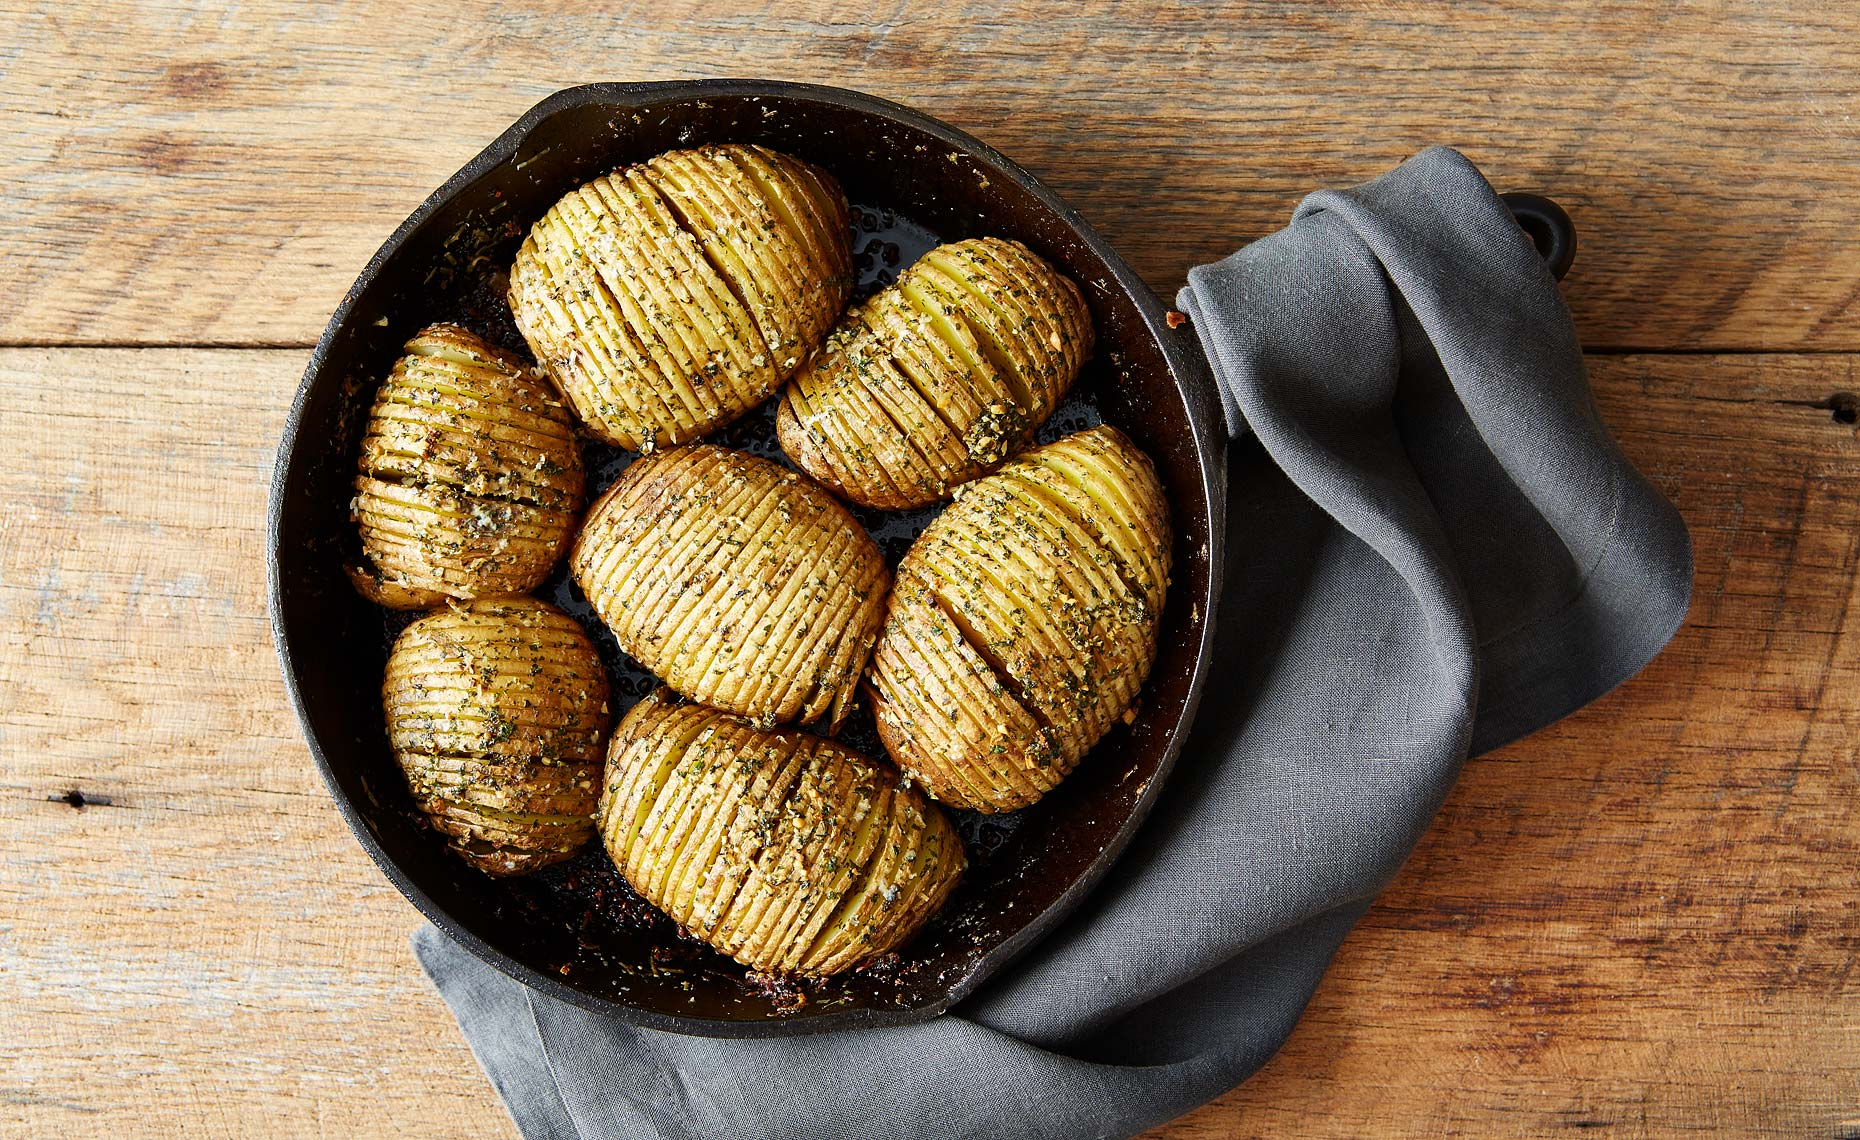 044_2015-0210_hasselback-potatoes-mark-weinberg-325